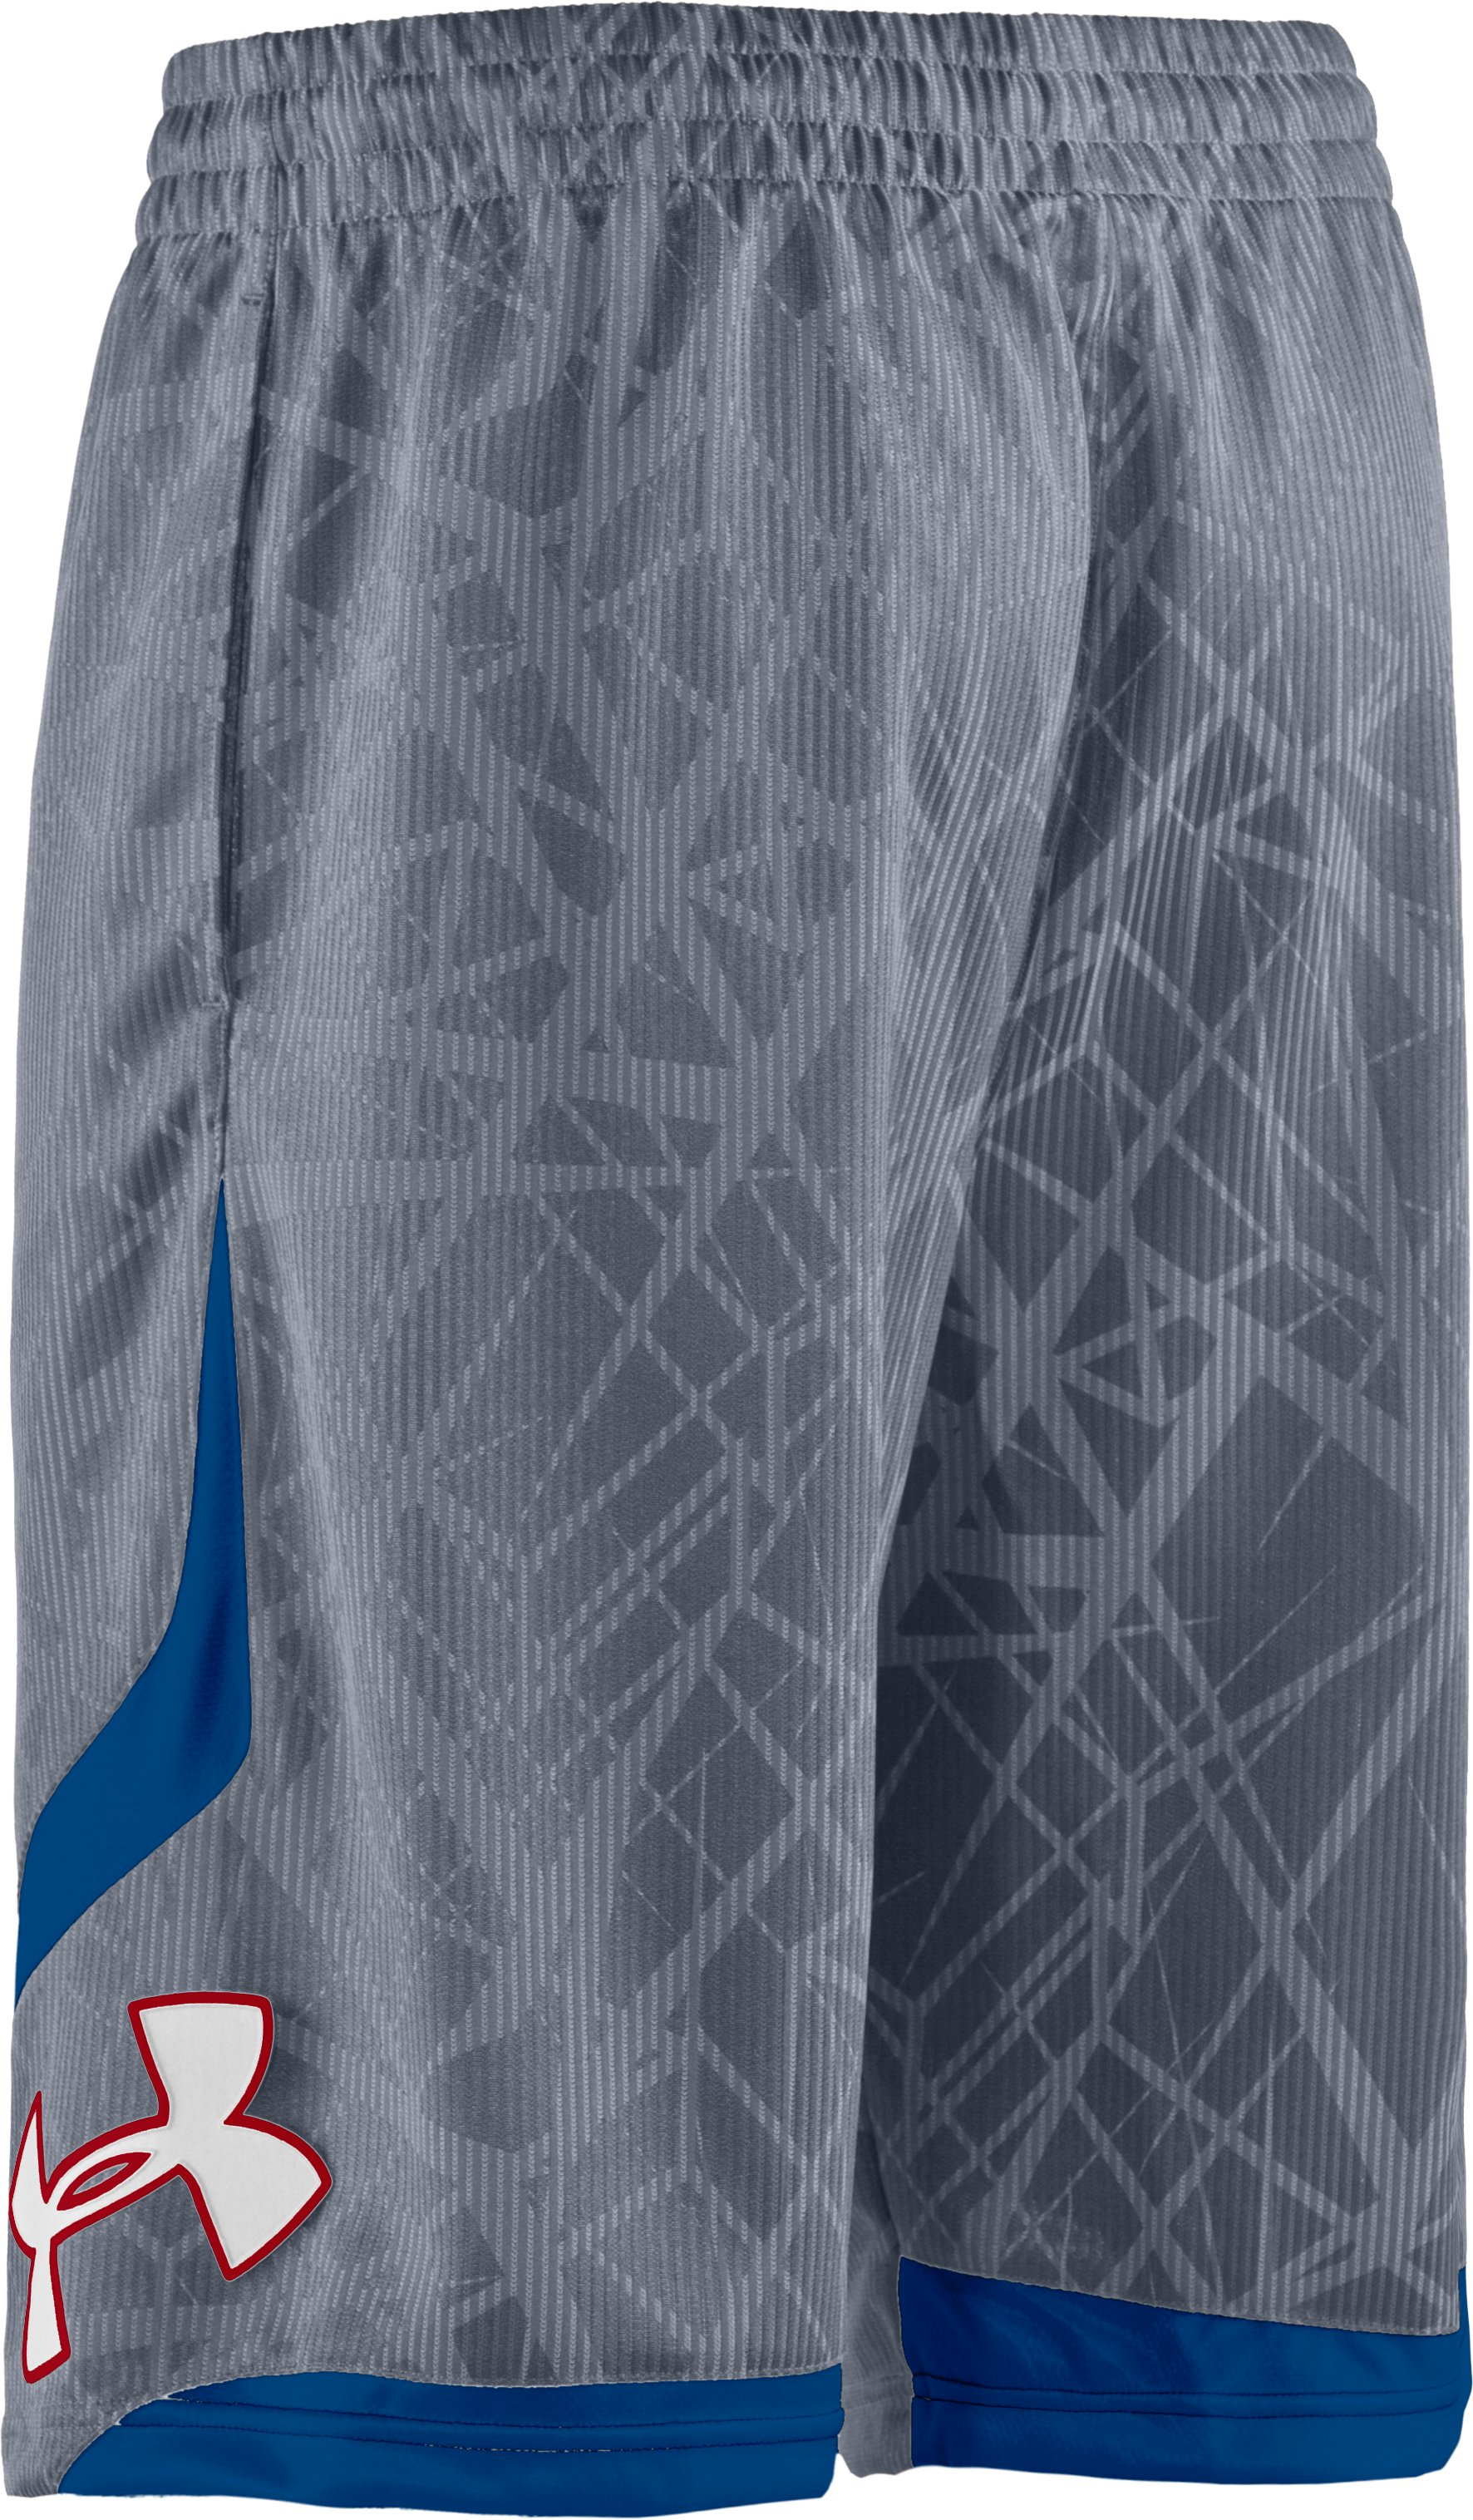 "Men's Printed UA Valkyrie 12"" Basketball Shorts, Steel"